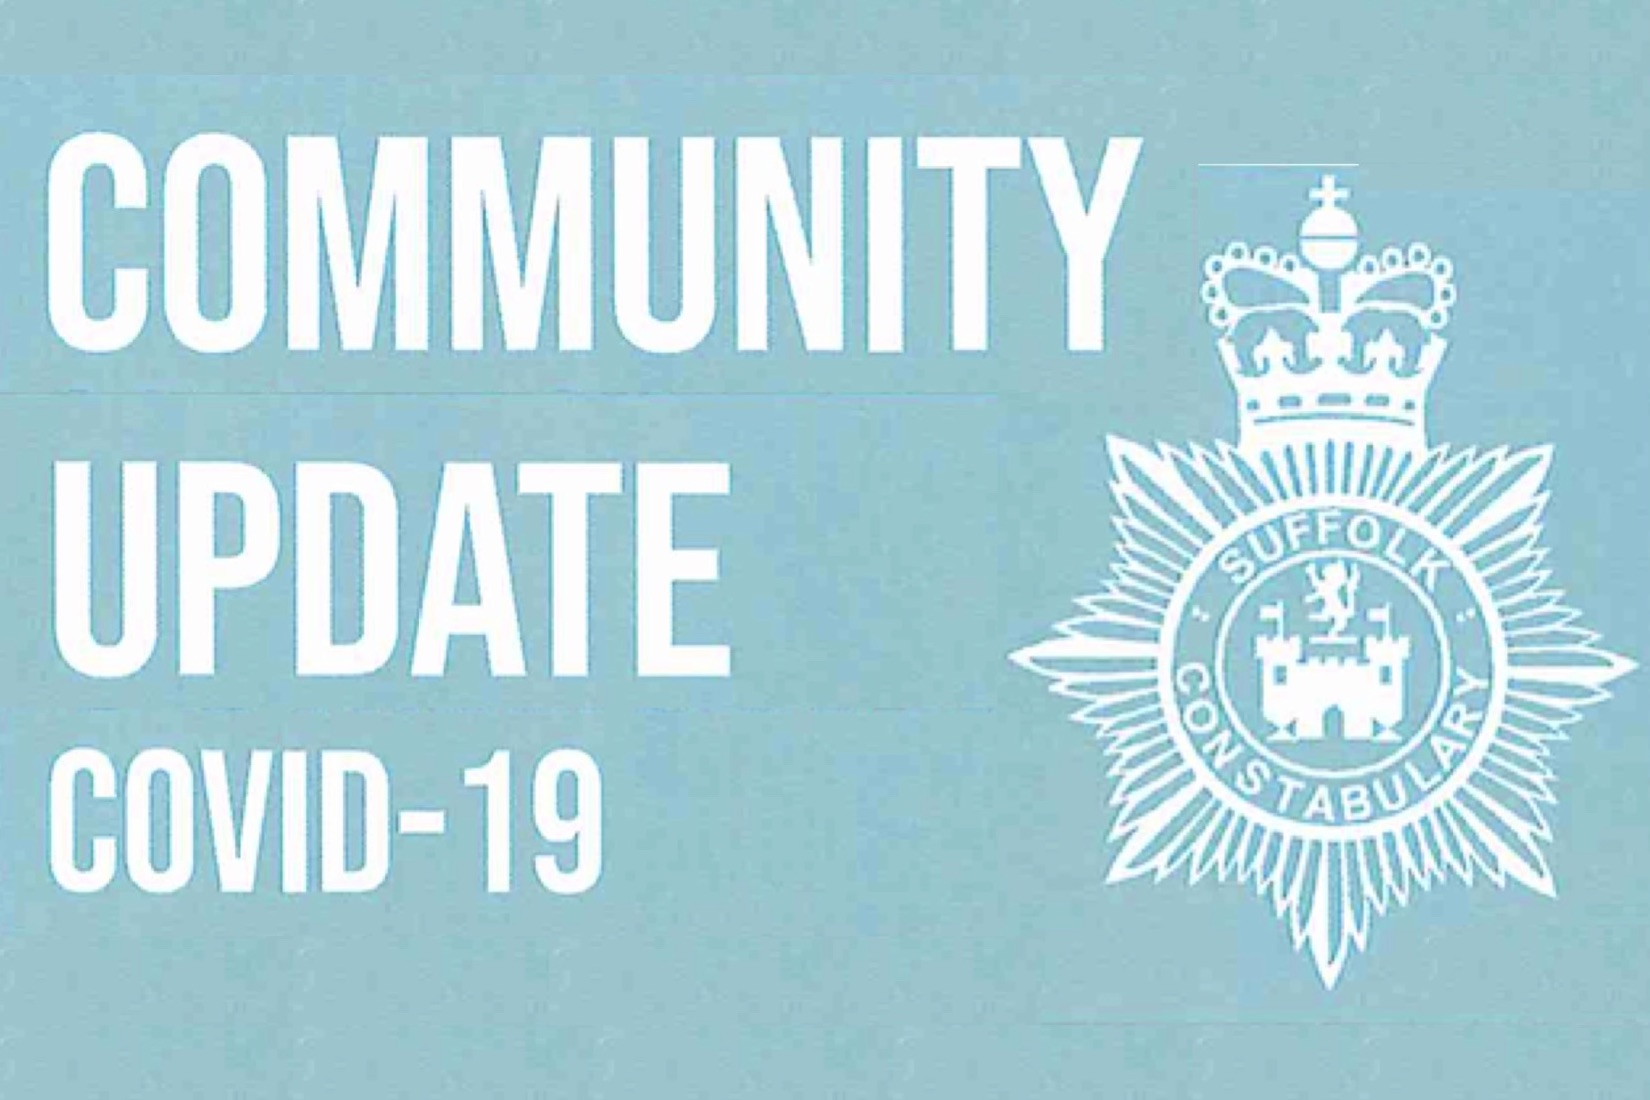 Police Community Update Covid19, 22'3'21